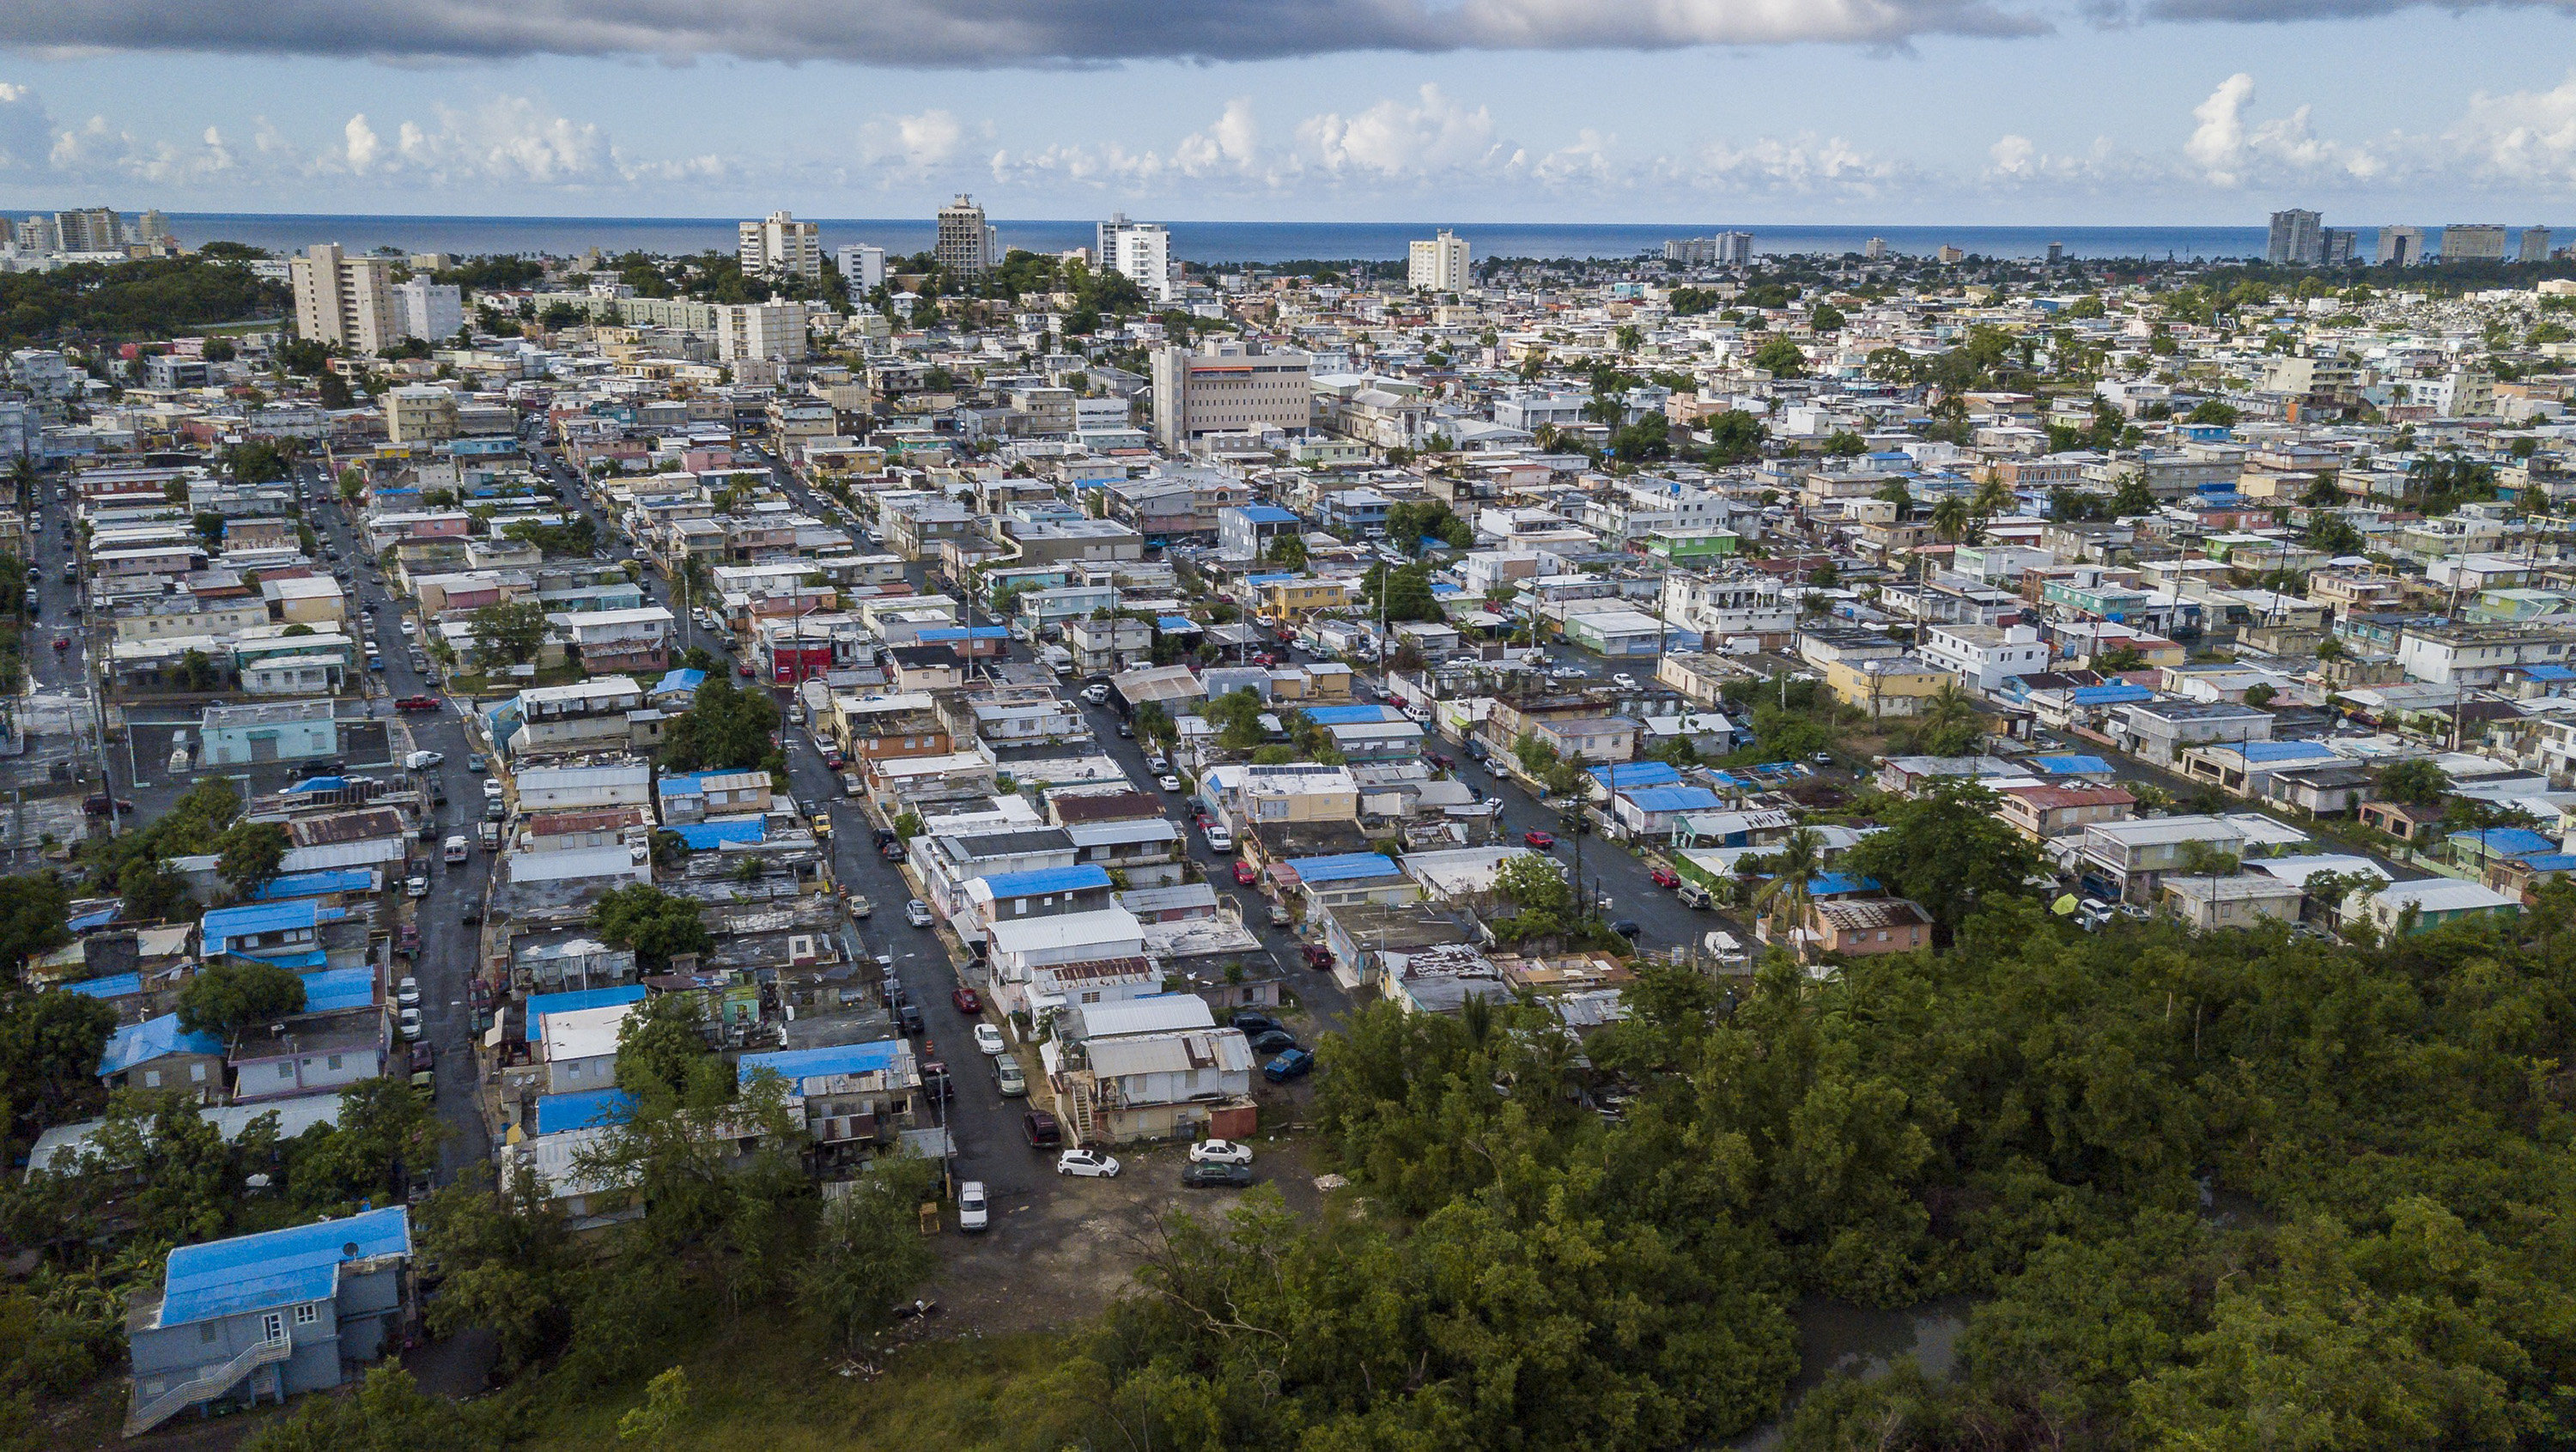 The San Juan neighborhood ofMartín Peña is regularly flooded by a canal that sends trash, rats and human